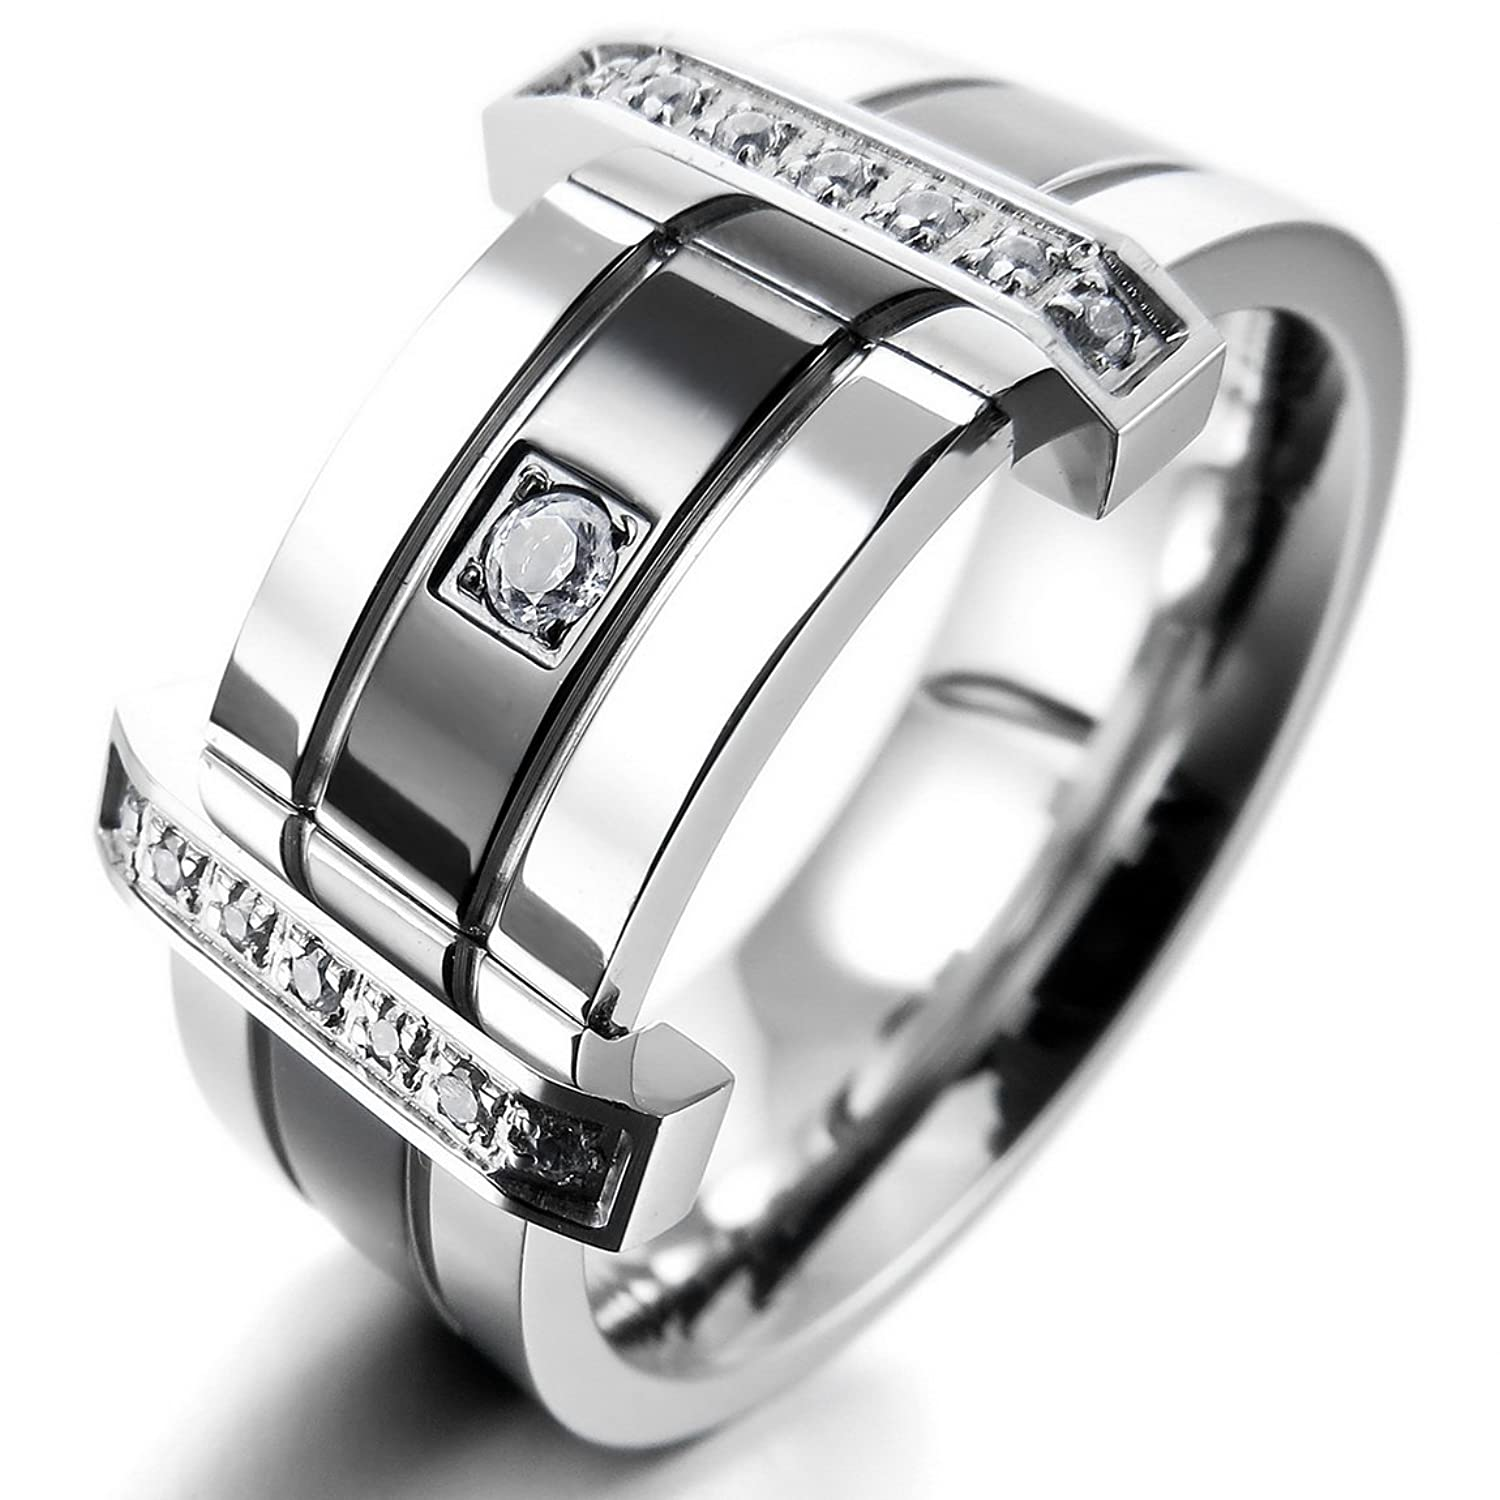 over platinum rings set remodel palladium remodeled wedding banded in remodelled centre ring the into portfolio combining a rub triple black plain with outer diamonds